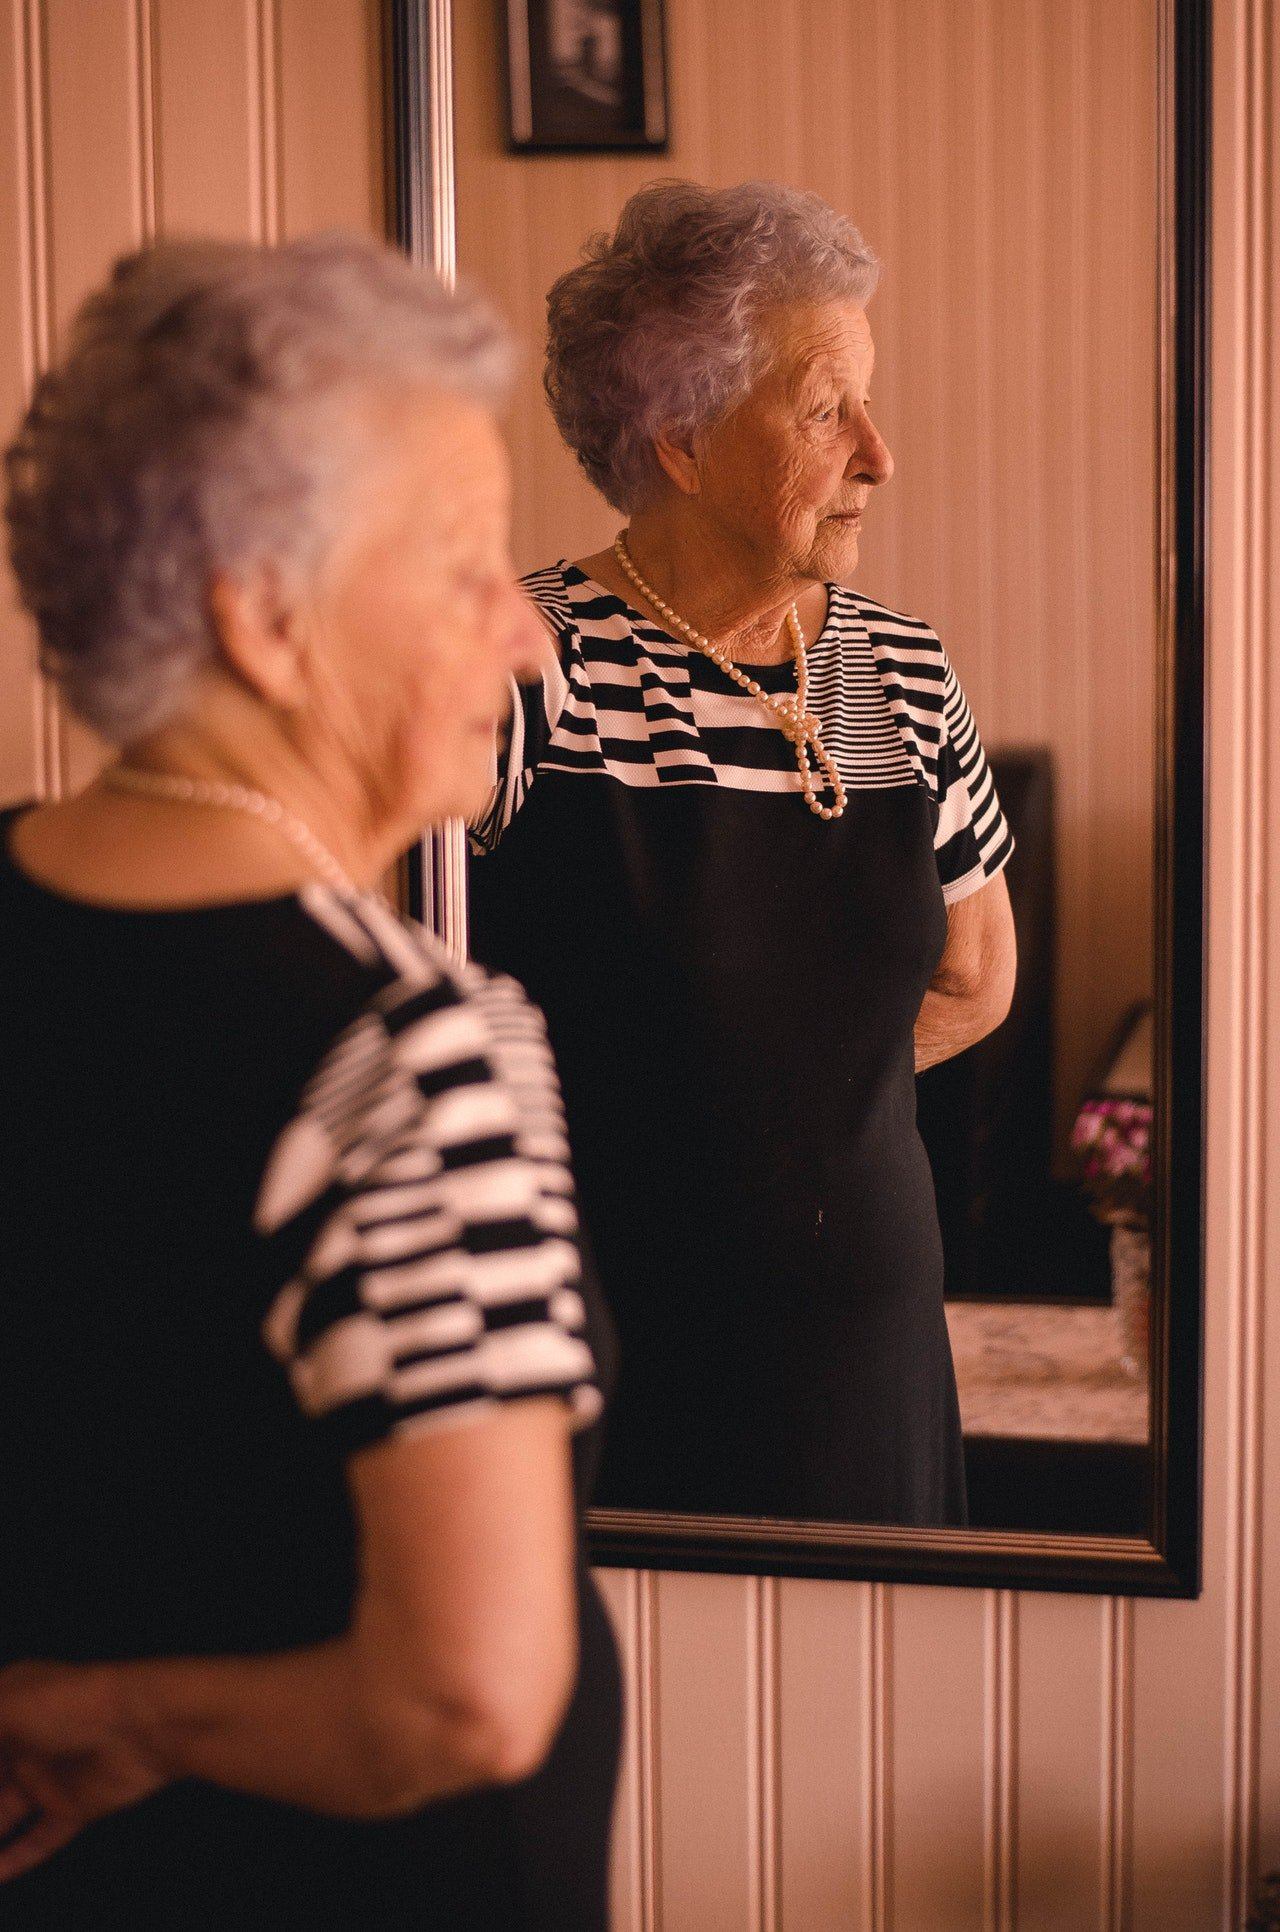 A grandmother standing in front of a mirror. | Source: Pexels